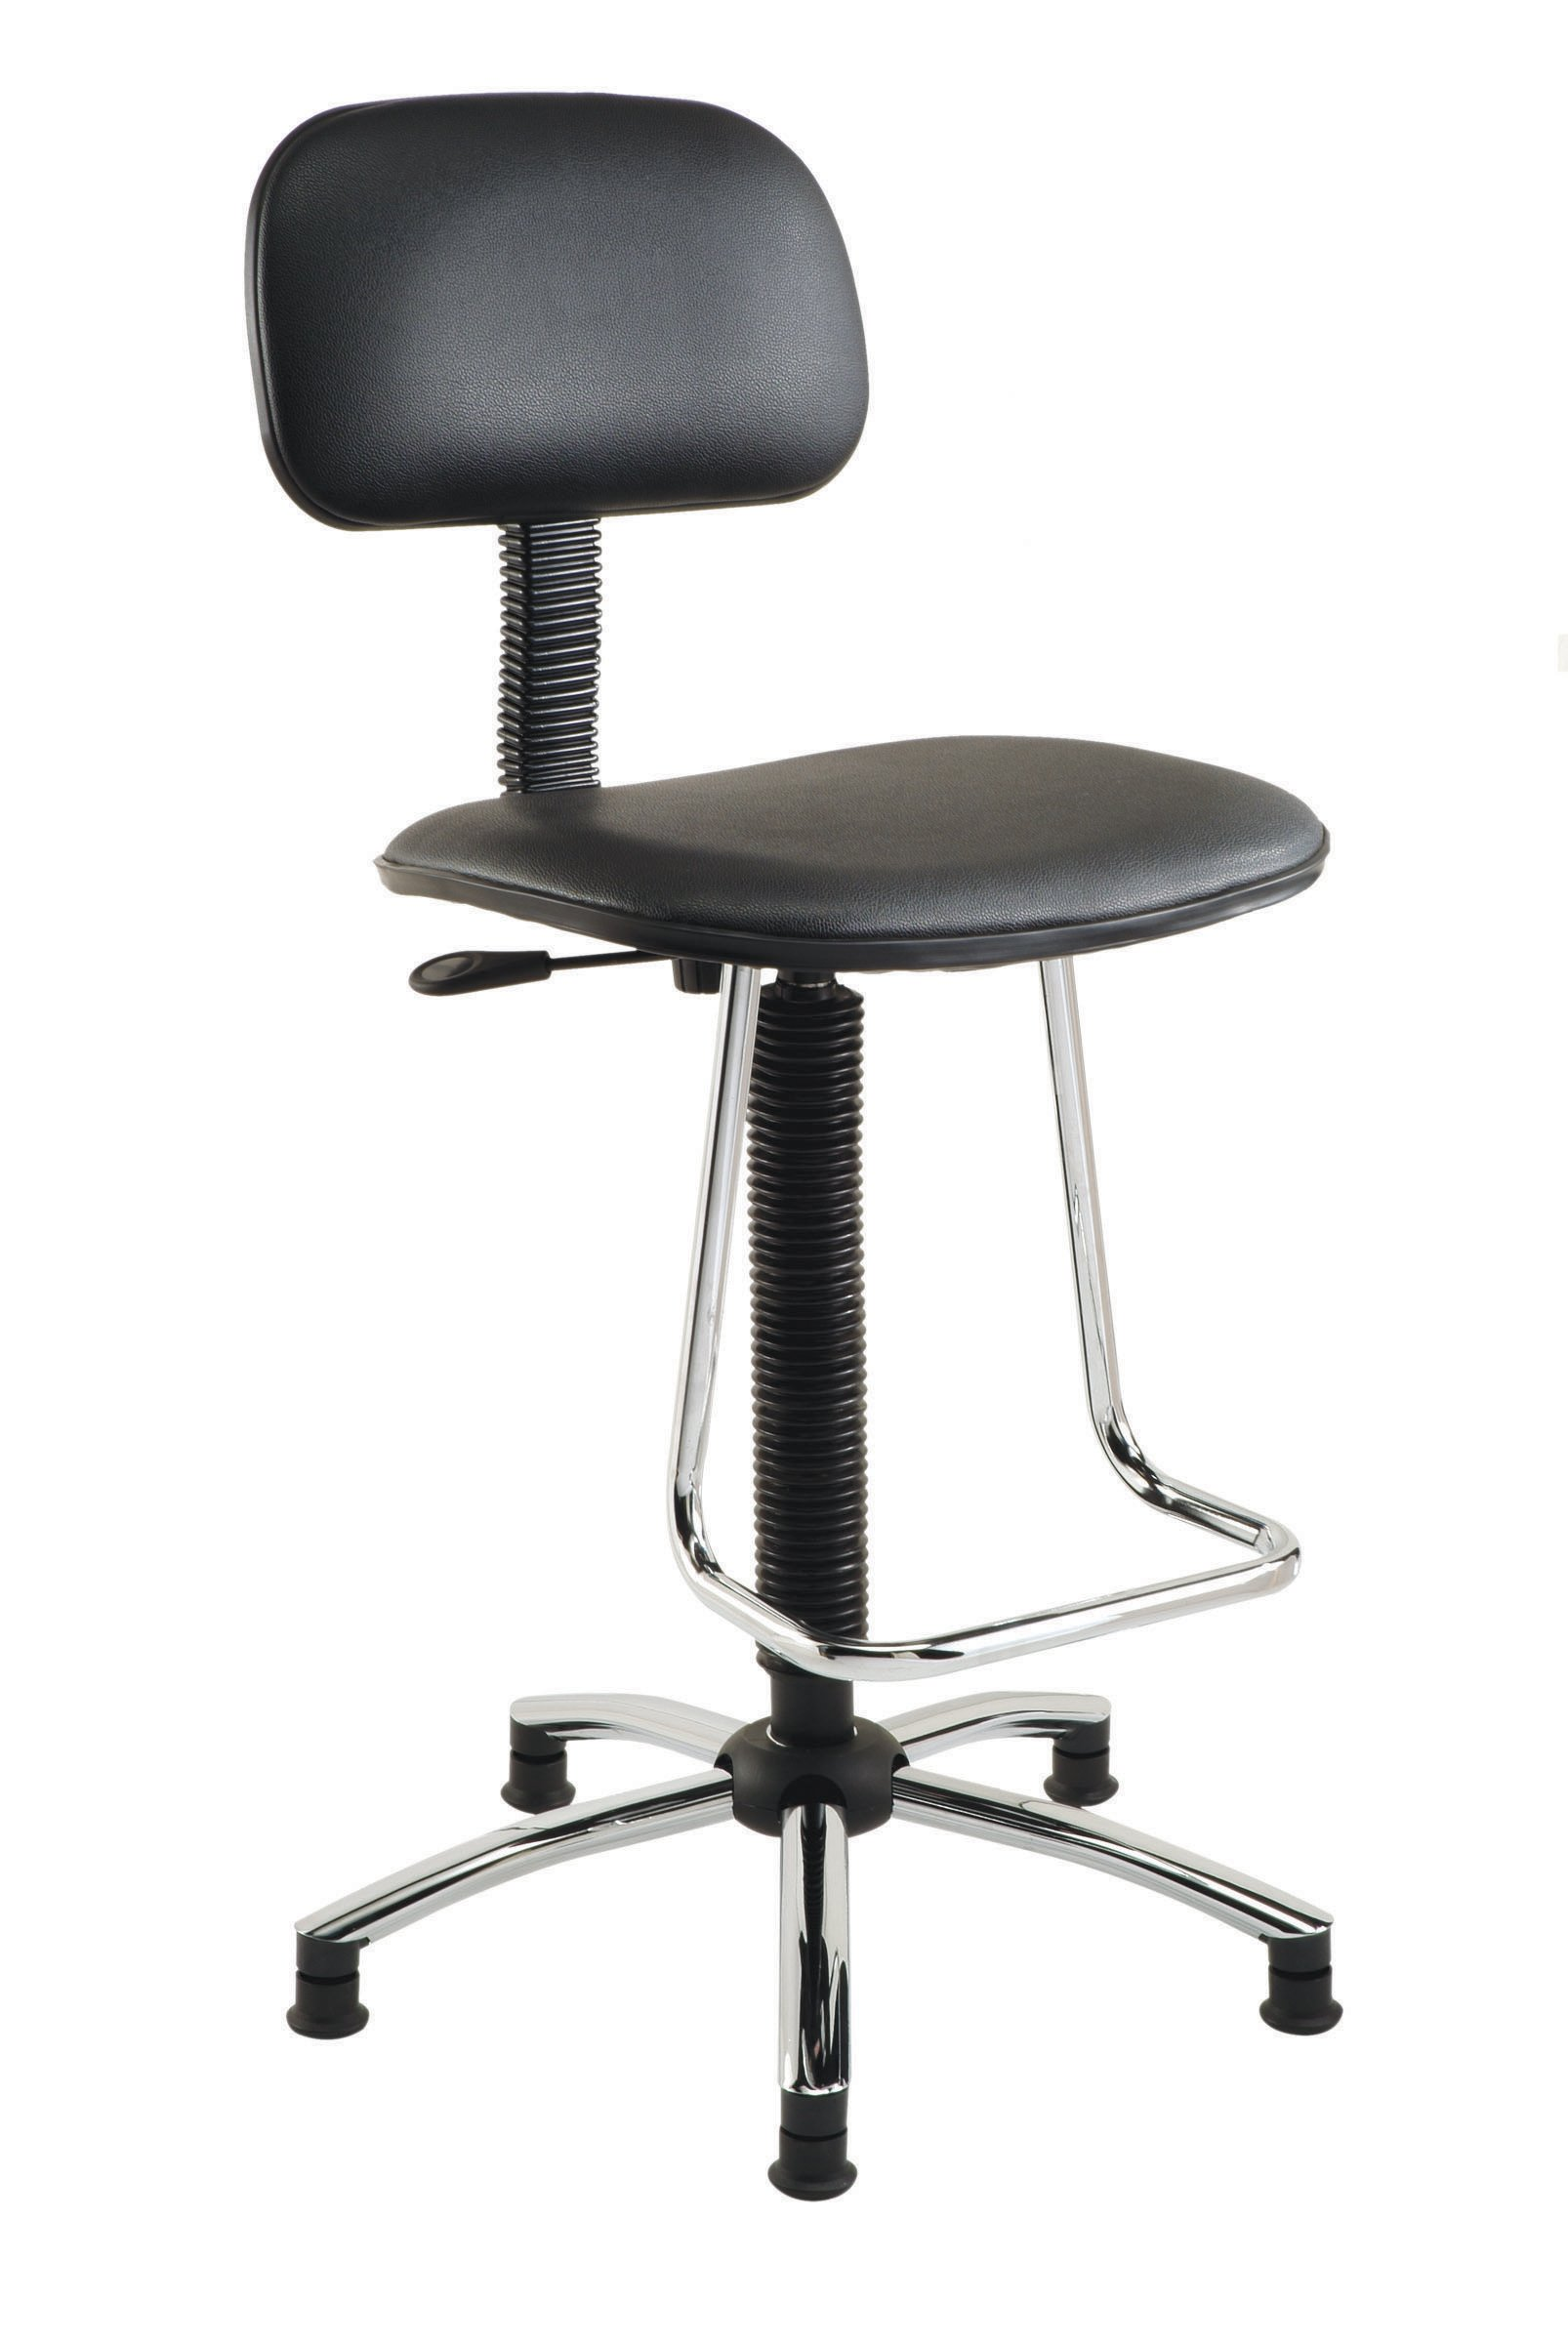 Nexel Office Stool With Teardrop Footrest, Black Vinyl